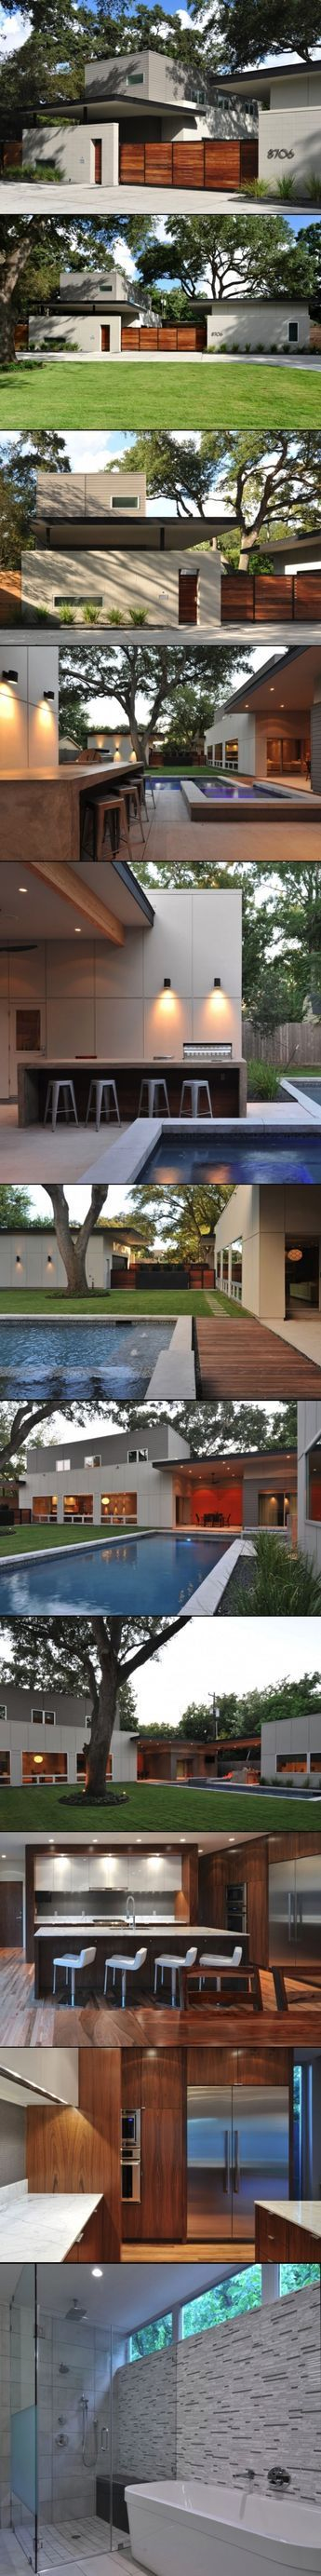 Best 25 house names ideas on pinterest 400 sq ft house for Top architecture firms houston